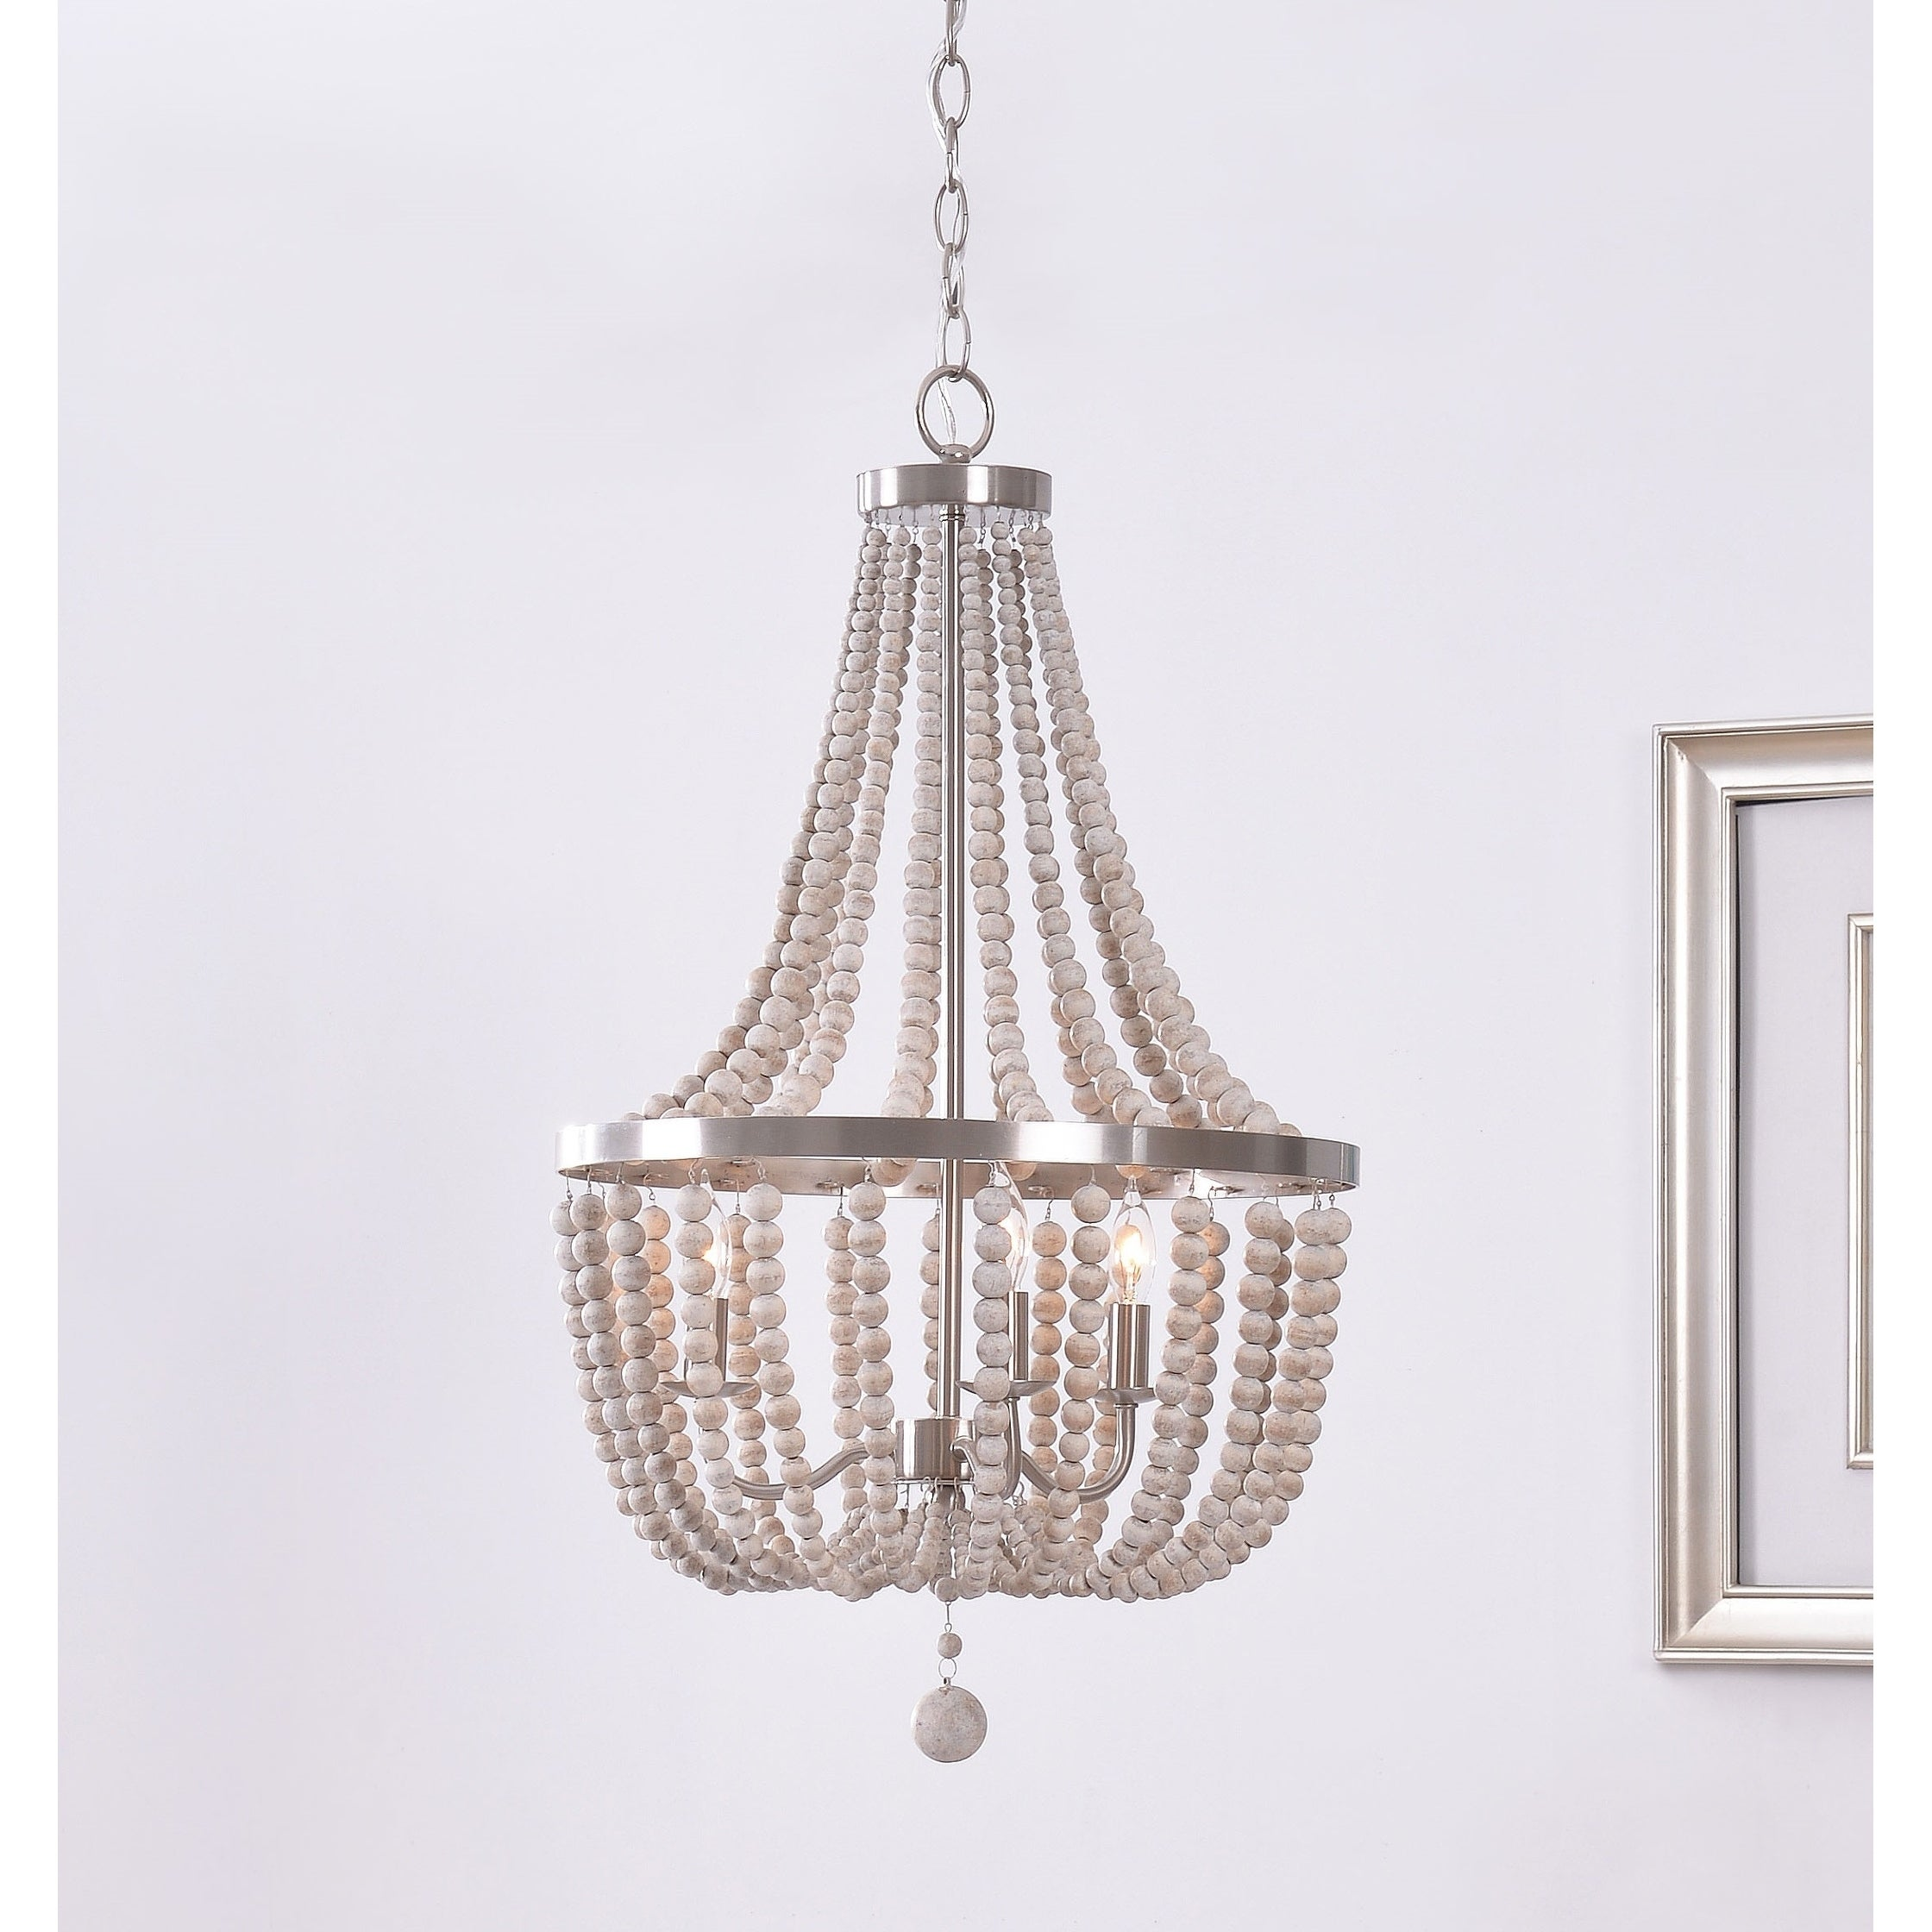 courant wood au wooden interiors beaded products chandelier empire kane